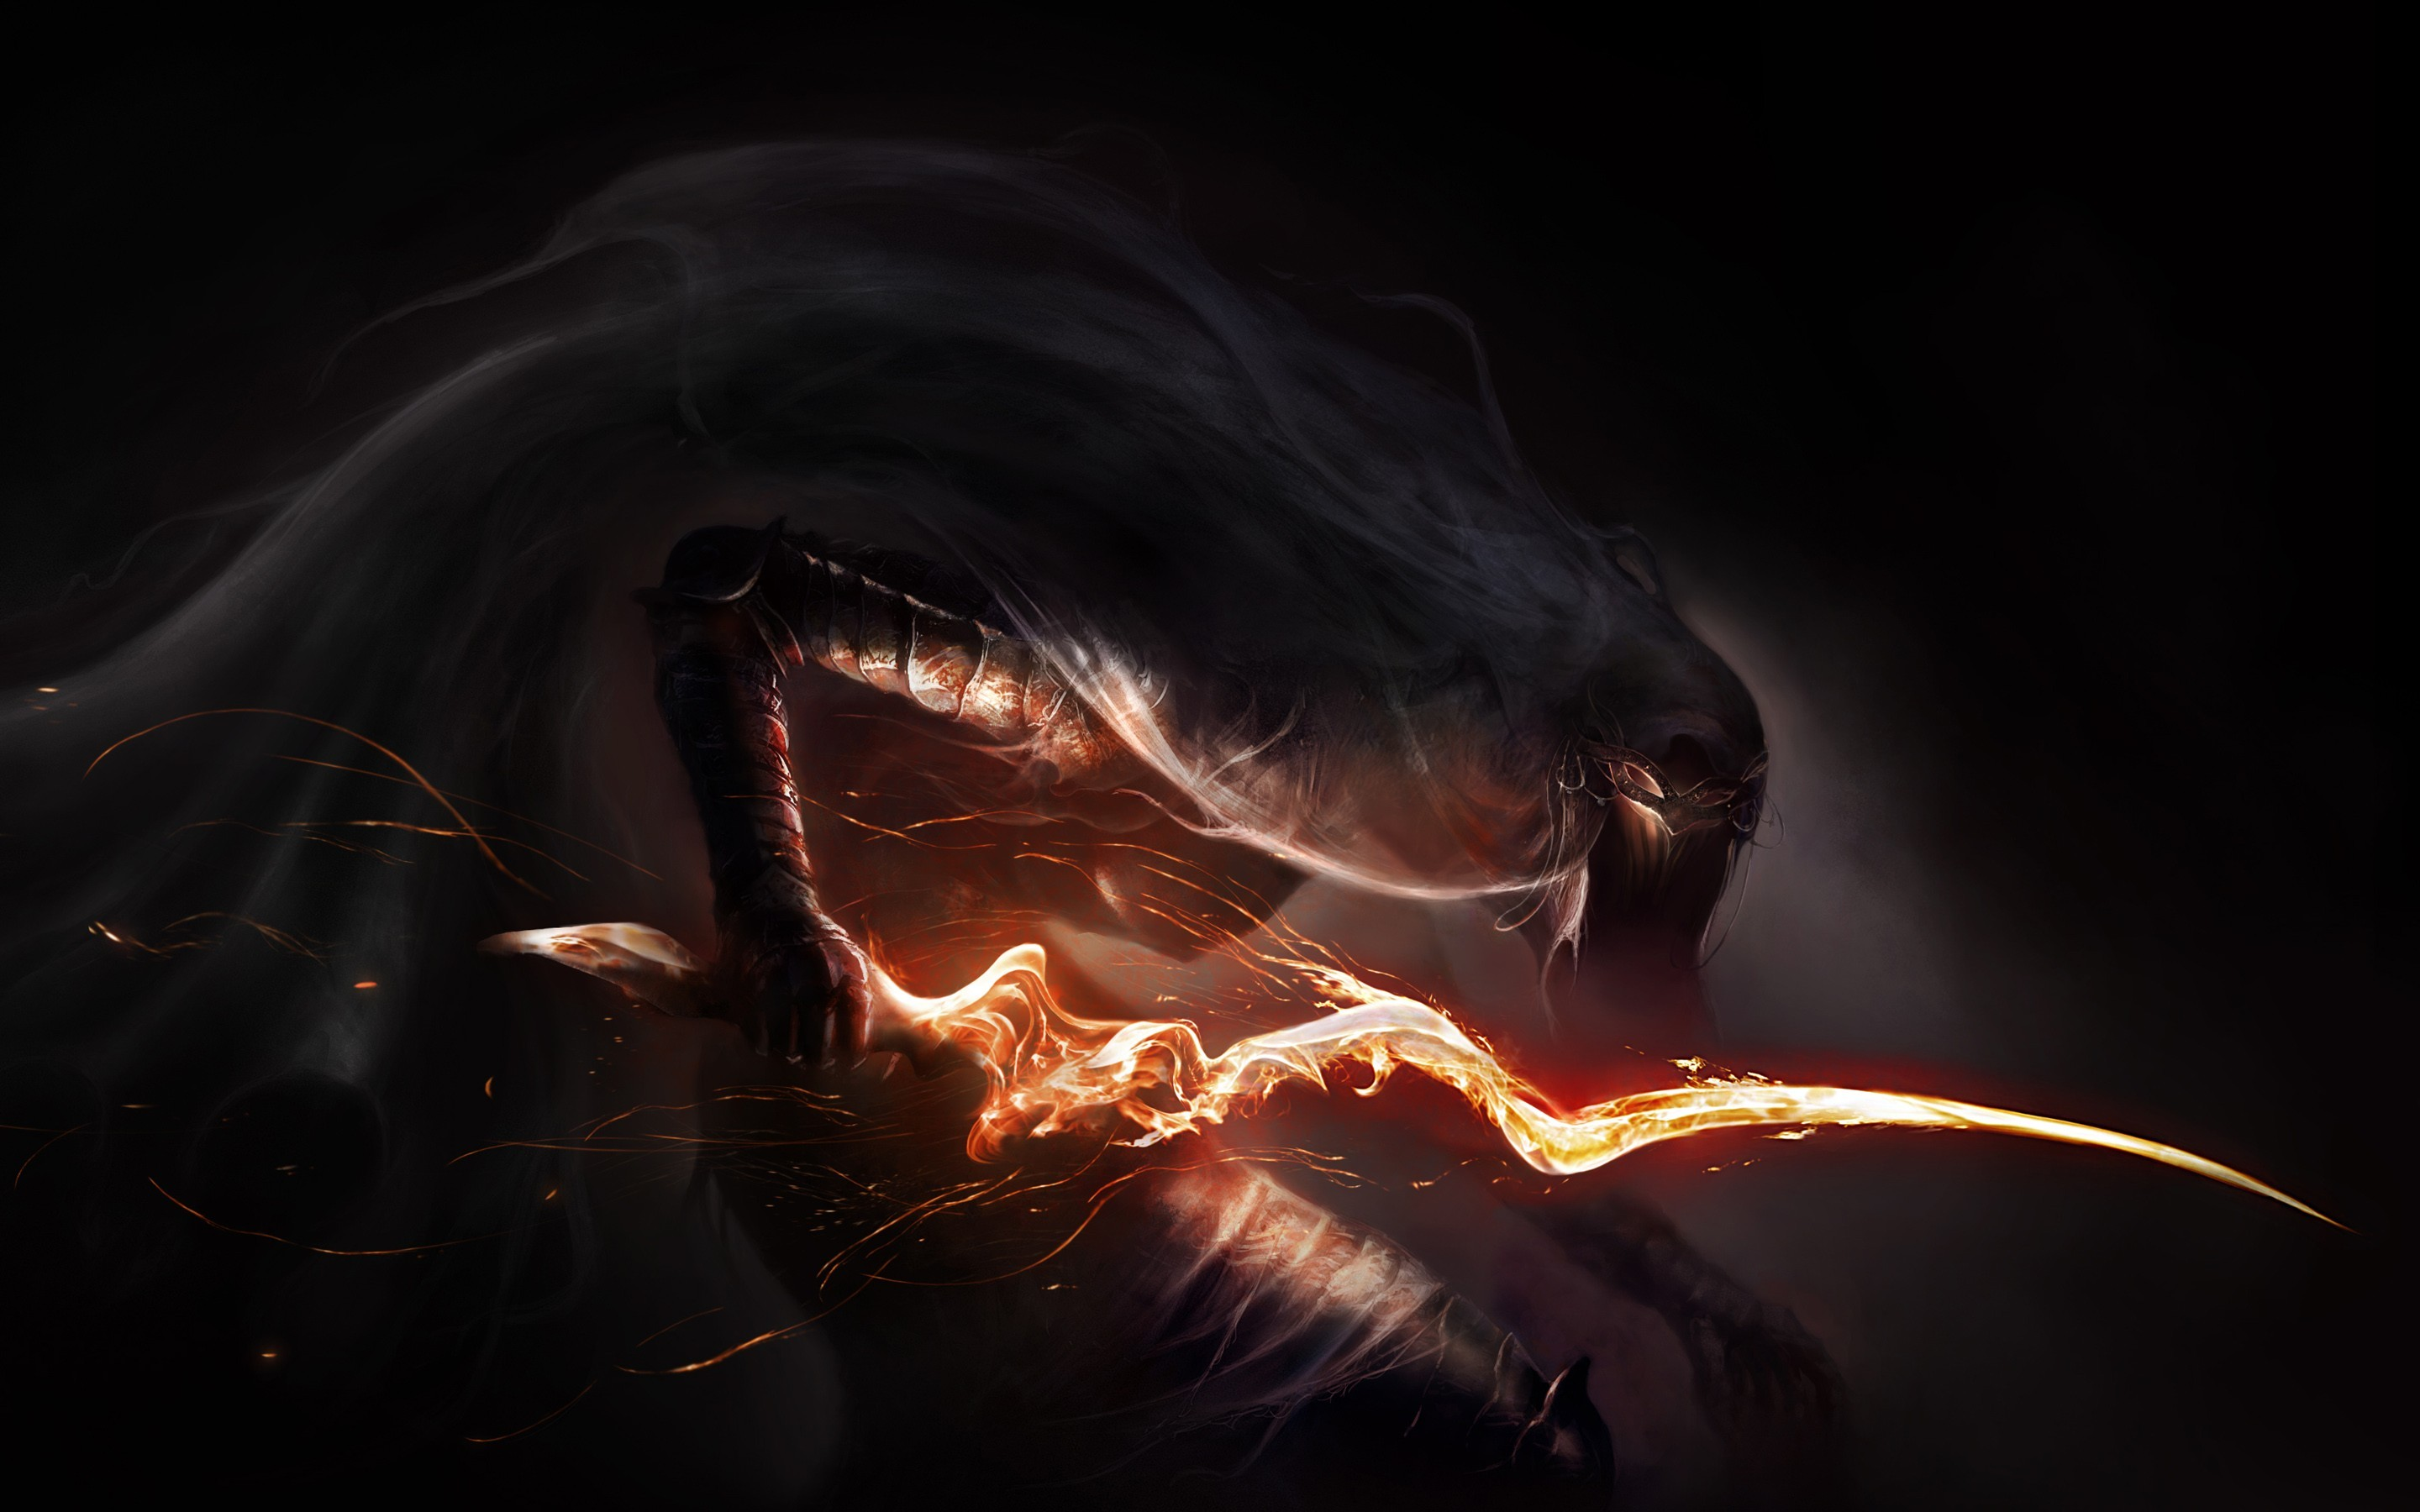 dark souls wallpaper 1920x1080: Dark Souls 3 Wallpaper 1920x1080 ·① Download Free Awesome